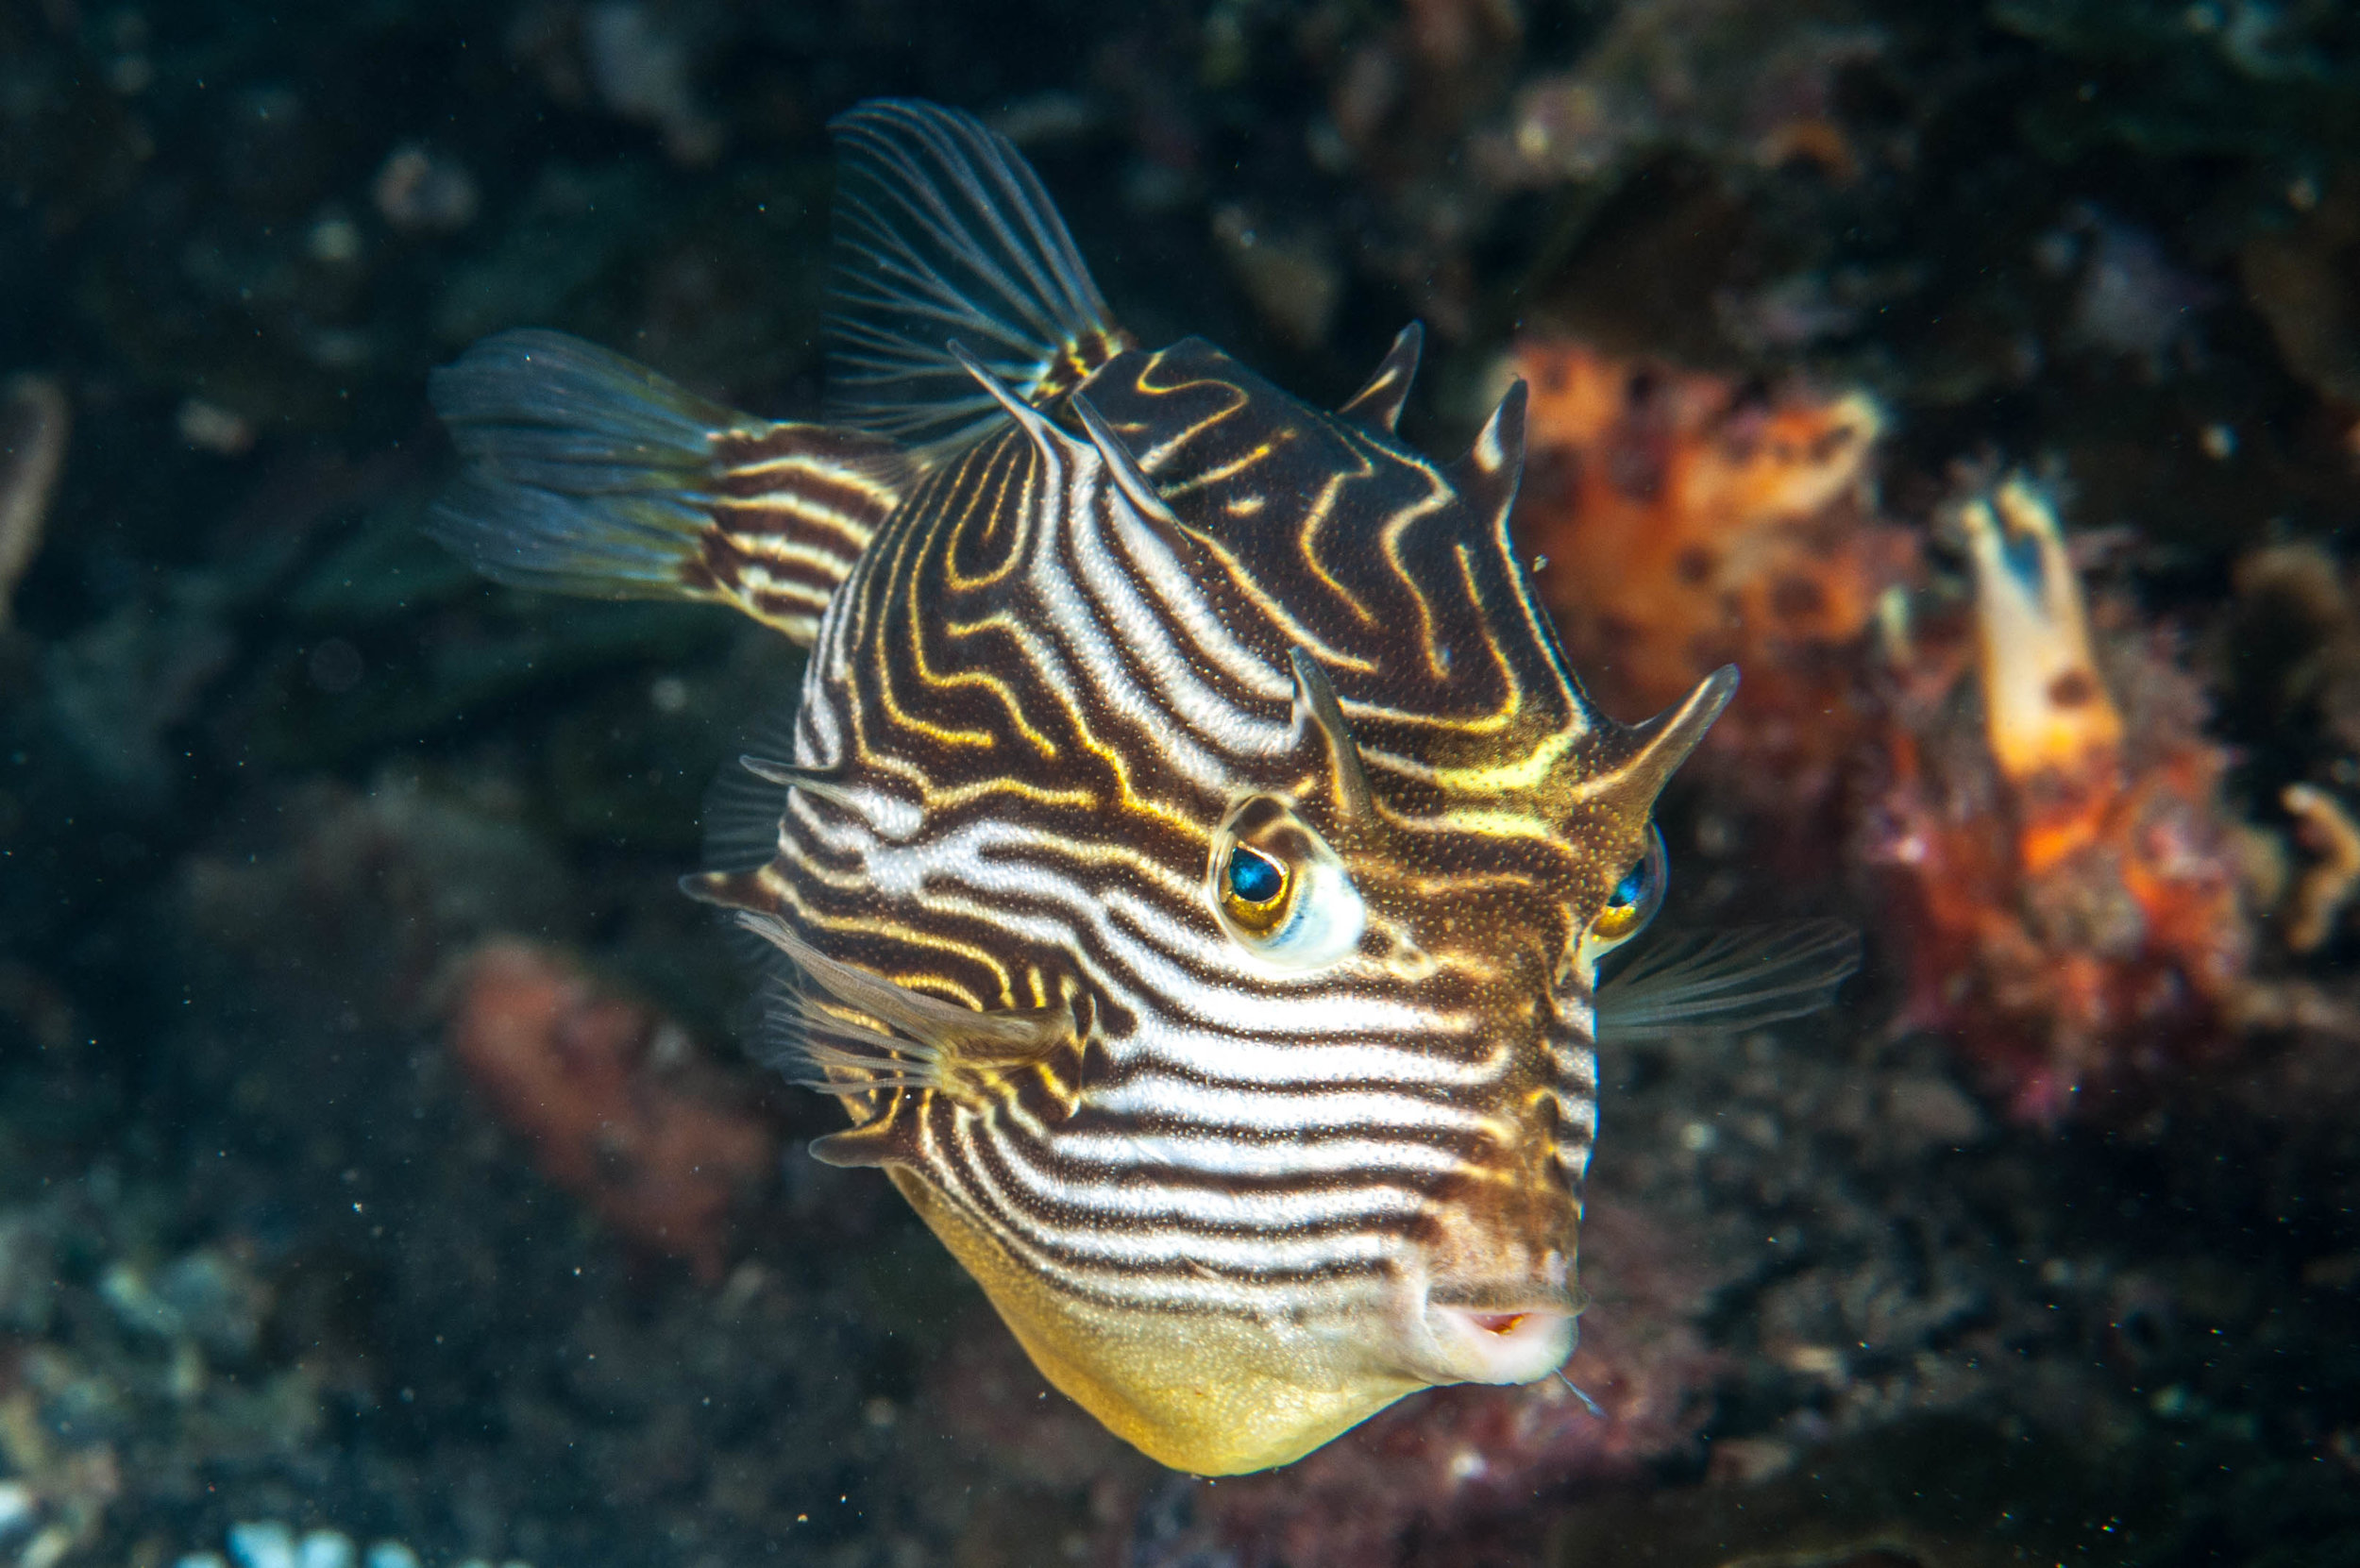 Ornate cowfish (Aracana ornata) female